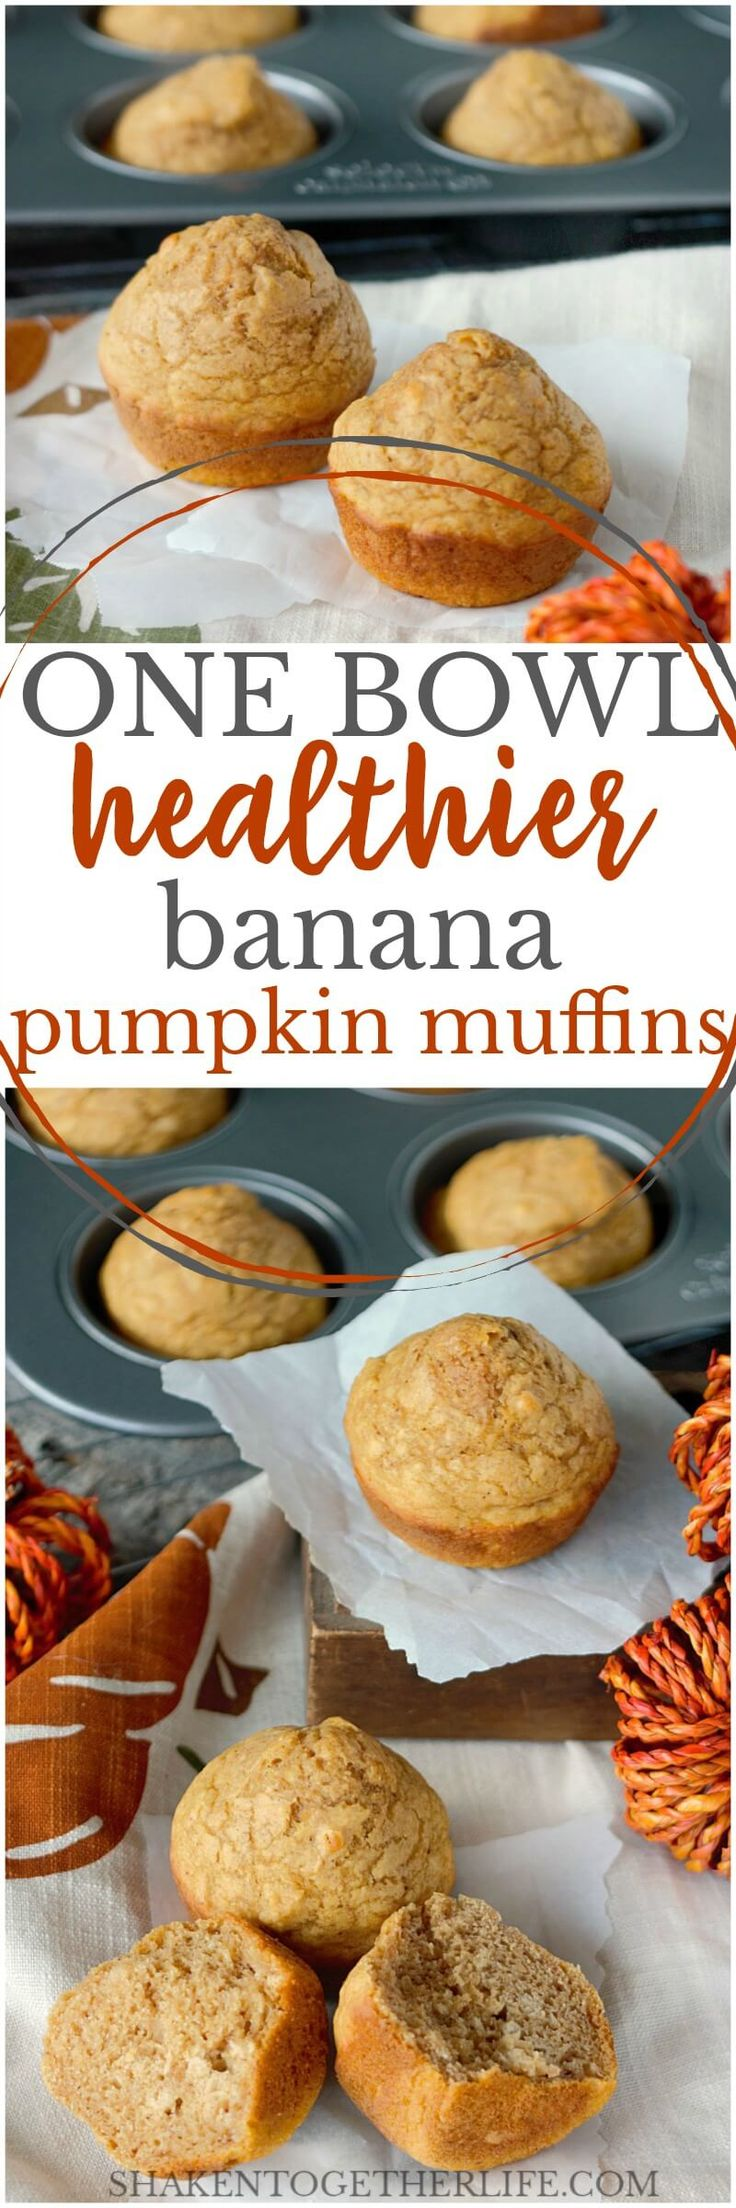 These One Bowl Healthier Banana Pumpkin Muffins are soft, slightly dense and sturdy enough to freeze. Pumpkin pie spice gives them the spicy warmth of nutmeg, cinnamon, cloves and allspice. The bananas add a hint of fruit and keep the muffins tender.